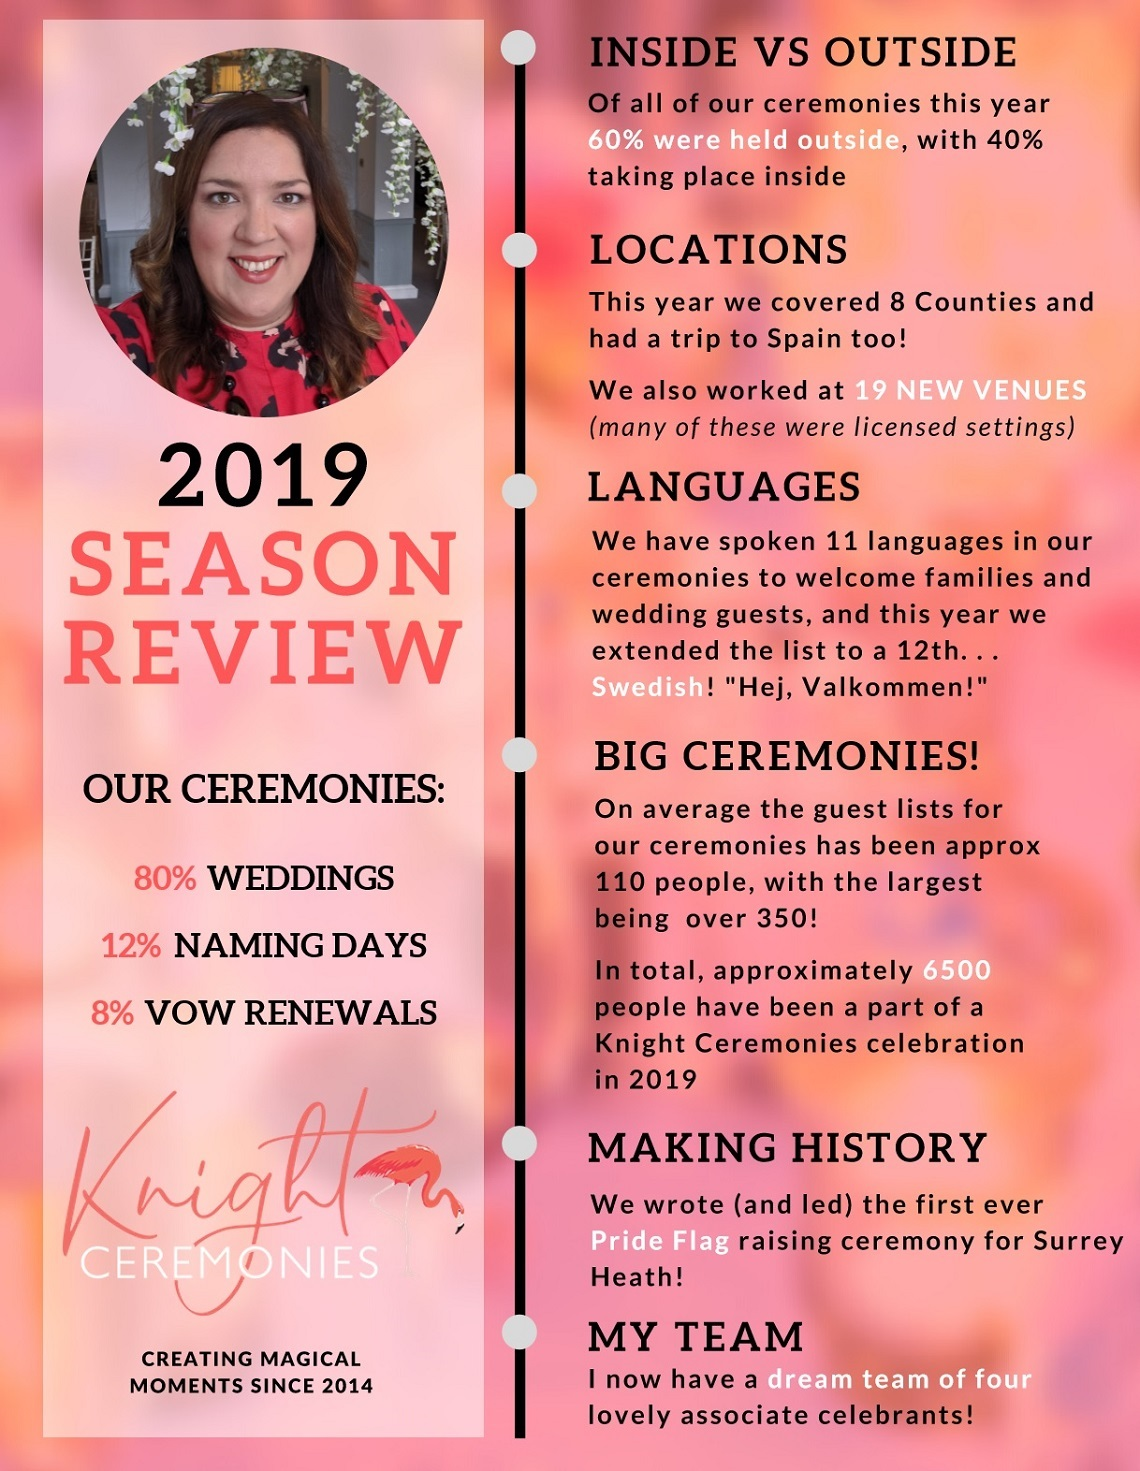 Knight Ceremonies 2019 season review